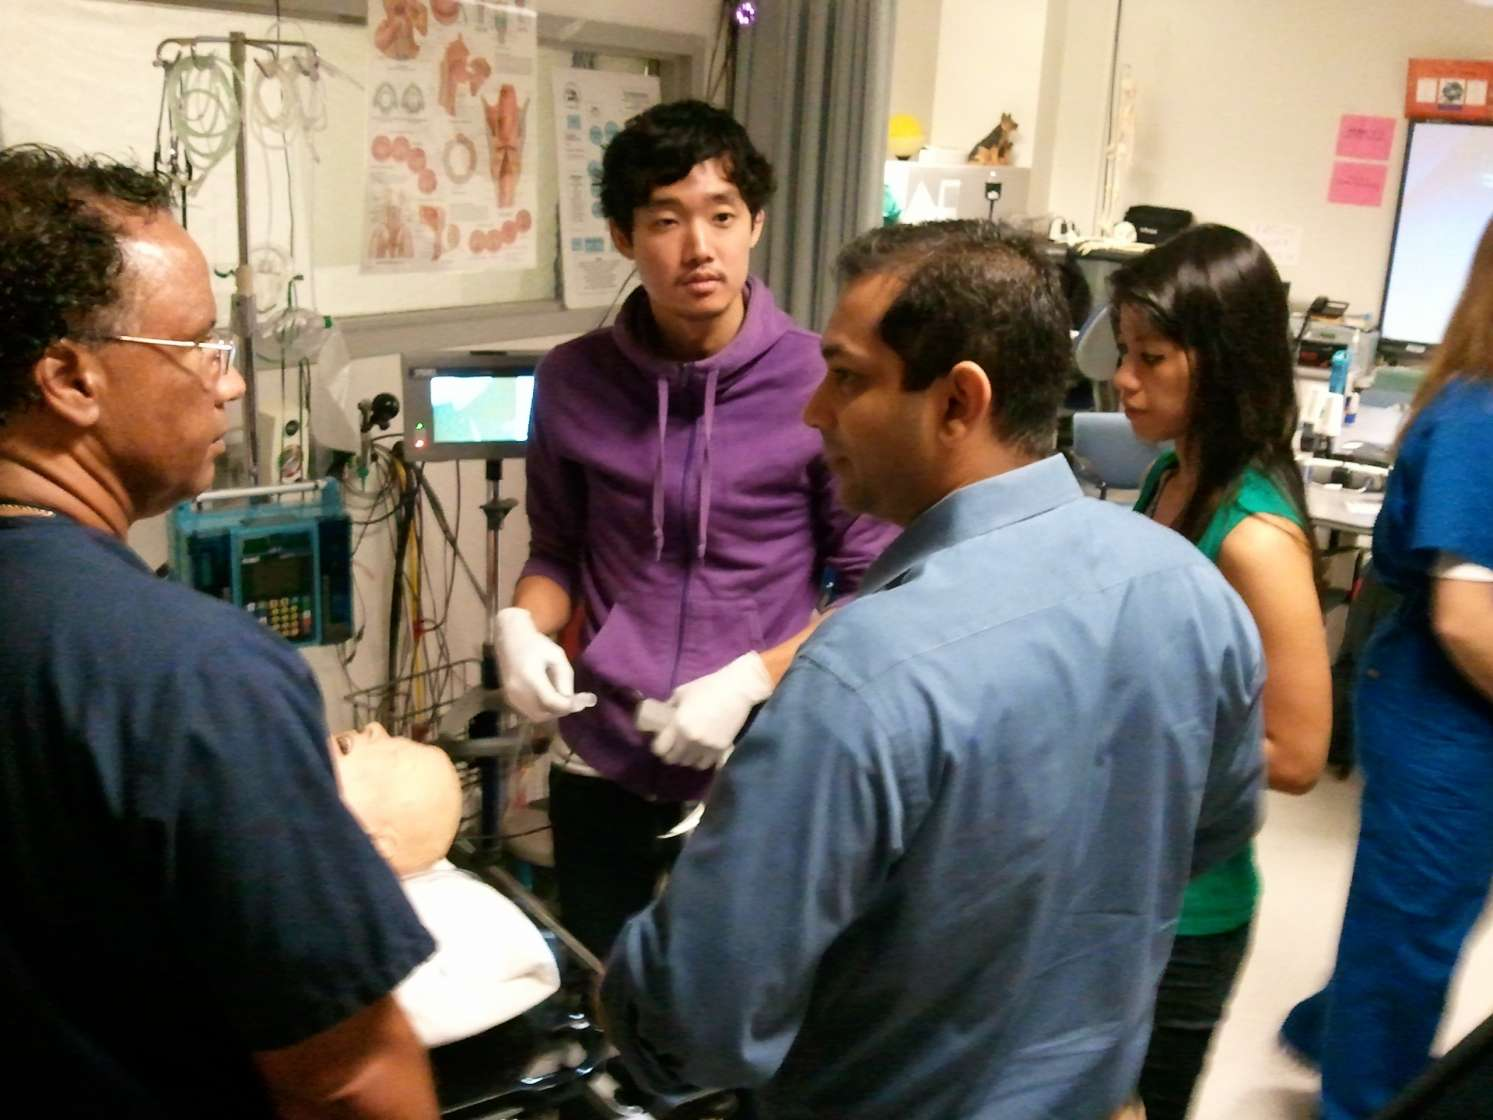 Students and teachers around a medical device.